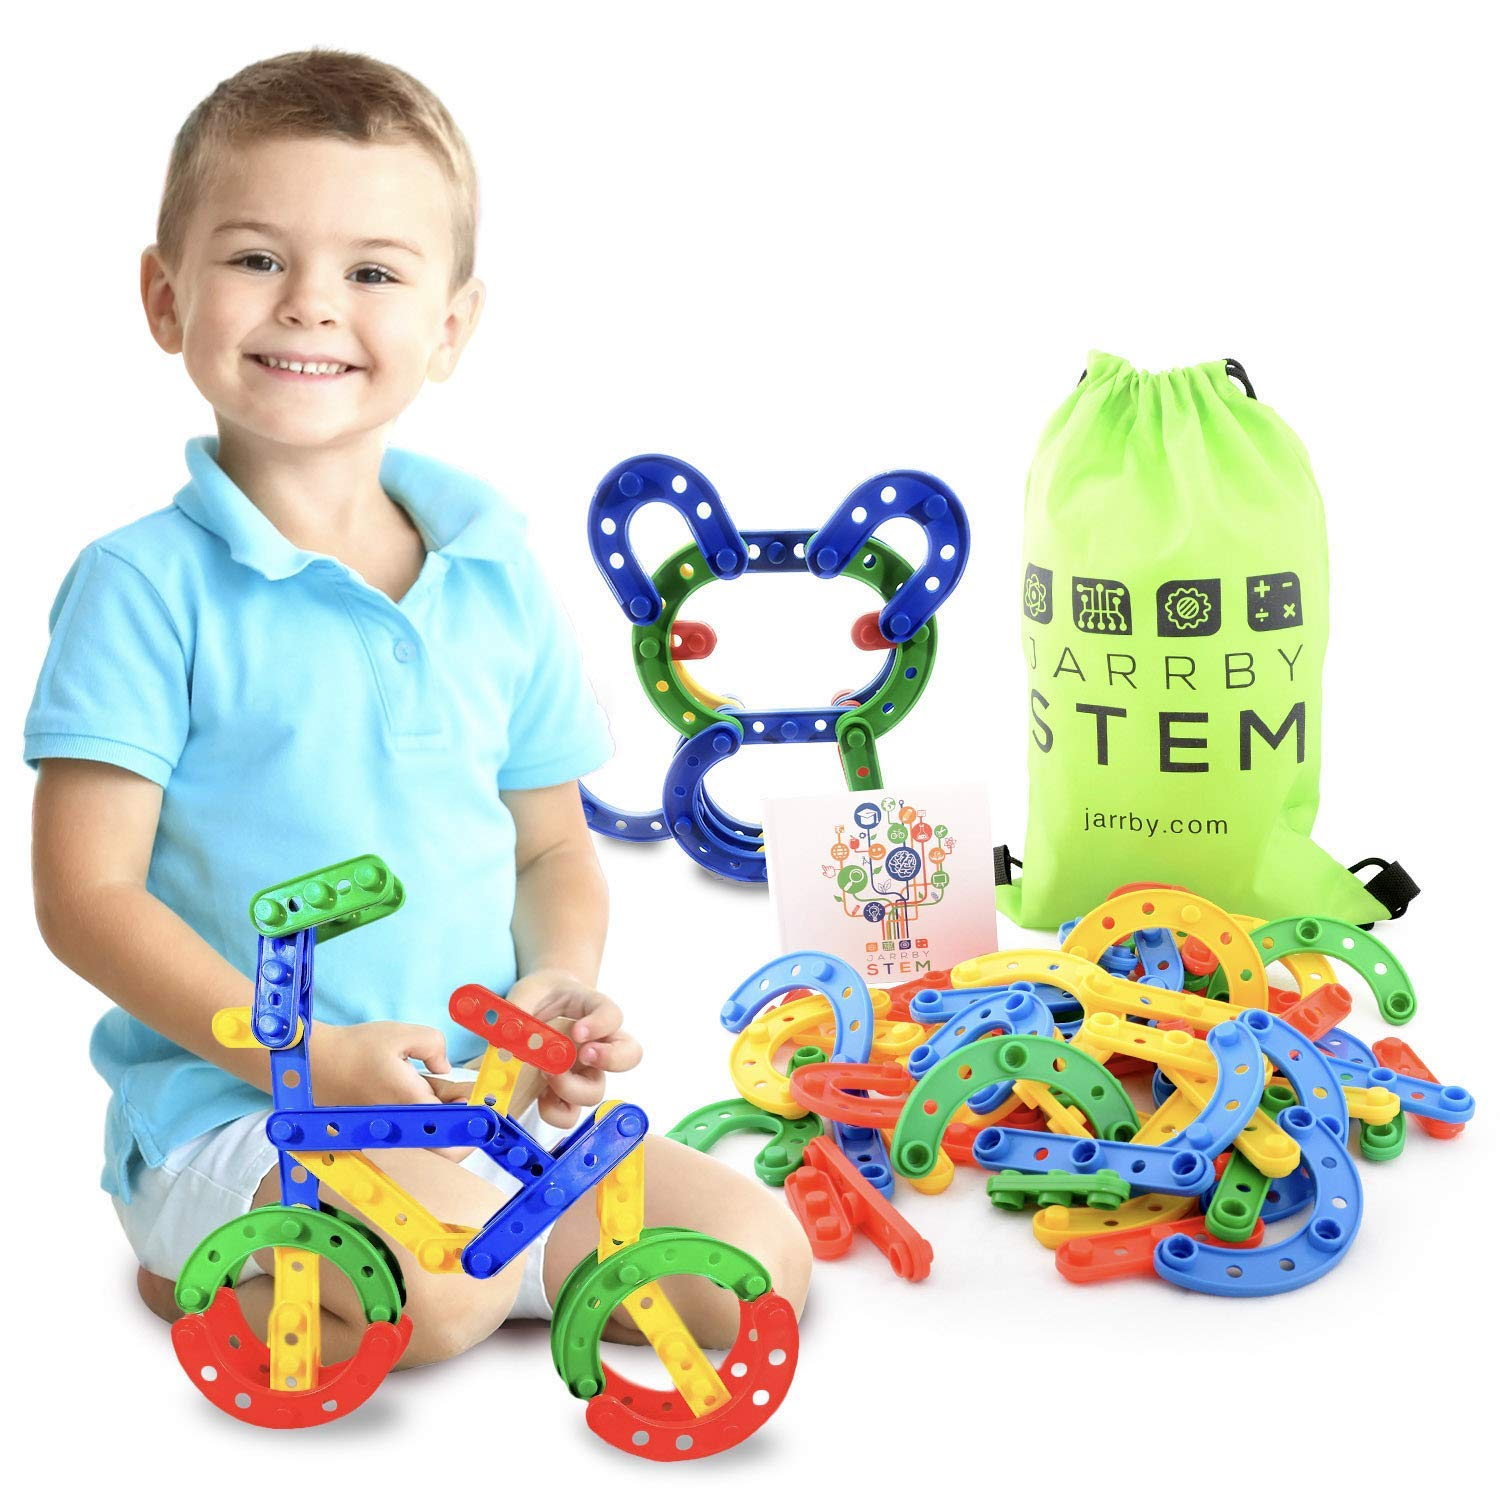 Montessori Toys for Toddlers - STEM / STEAM Therapy Toys